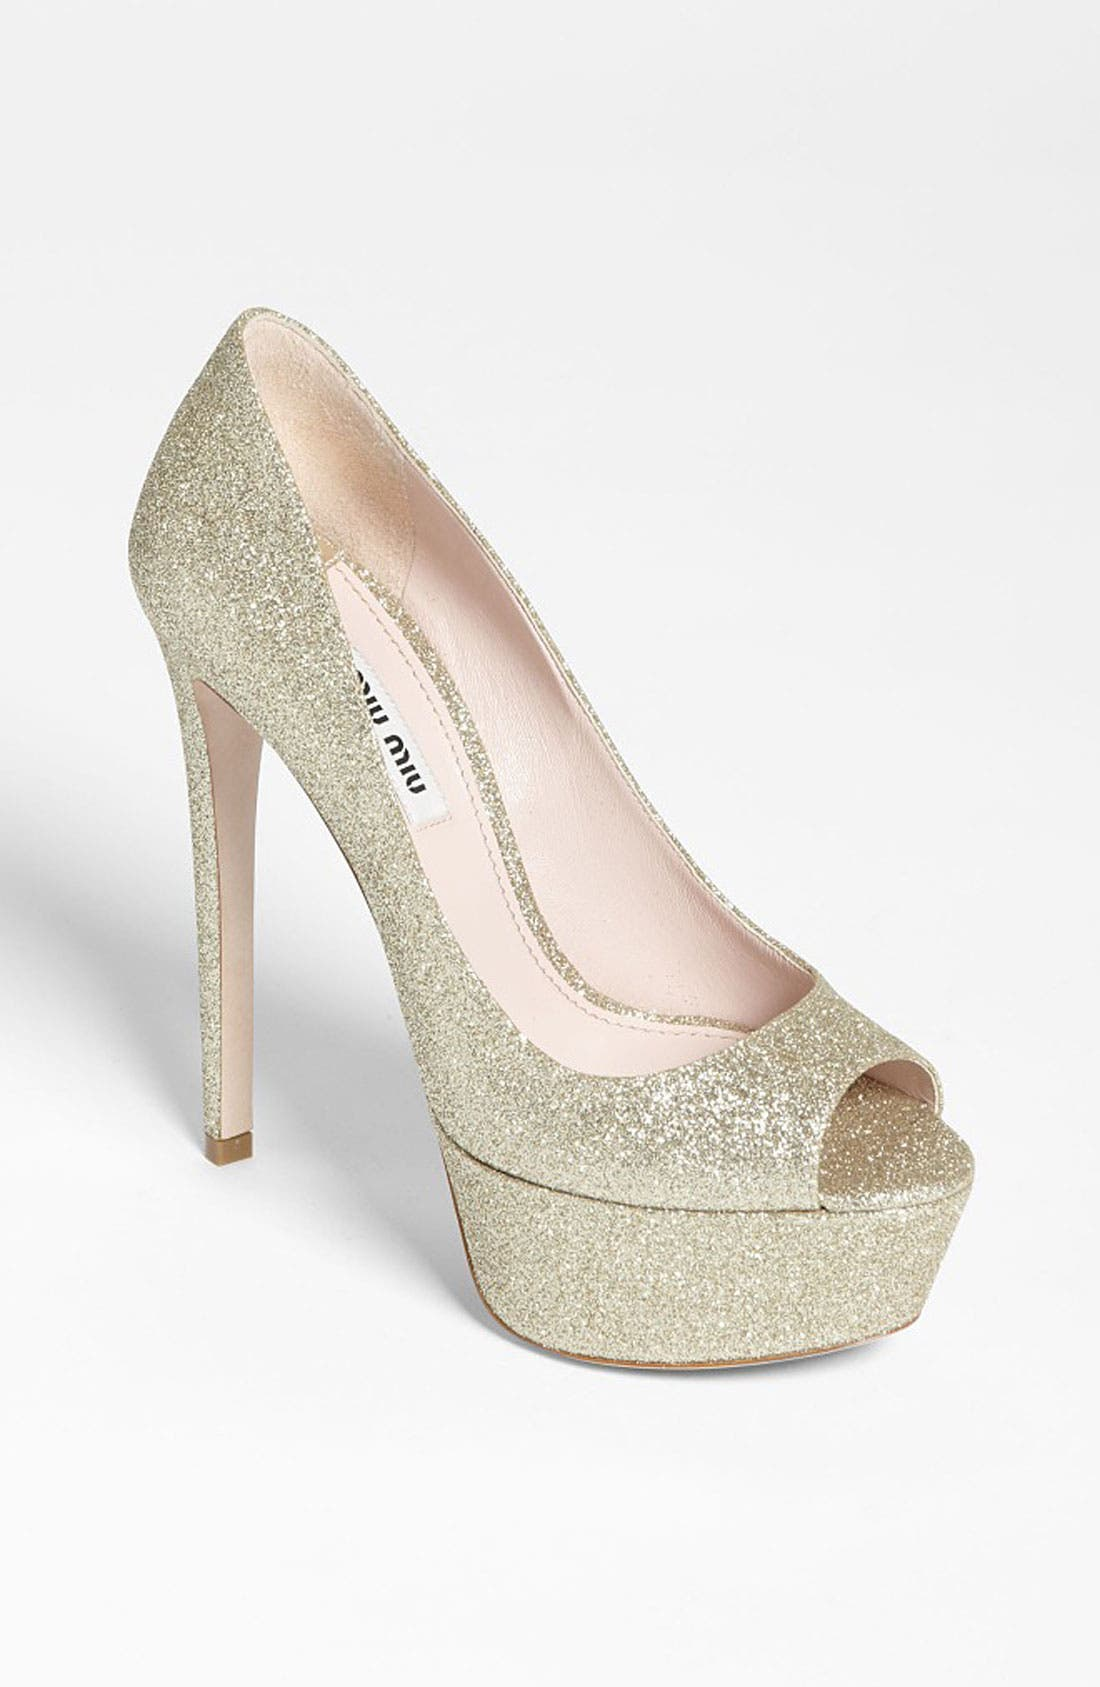 Alternate Image 1 Selected - Miu Miu Glitter Peep Toe Pump